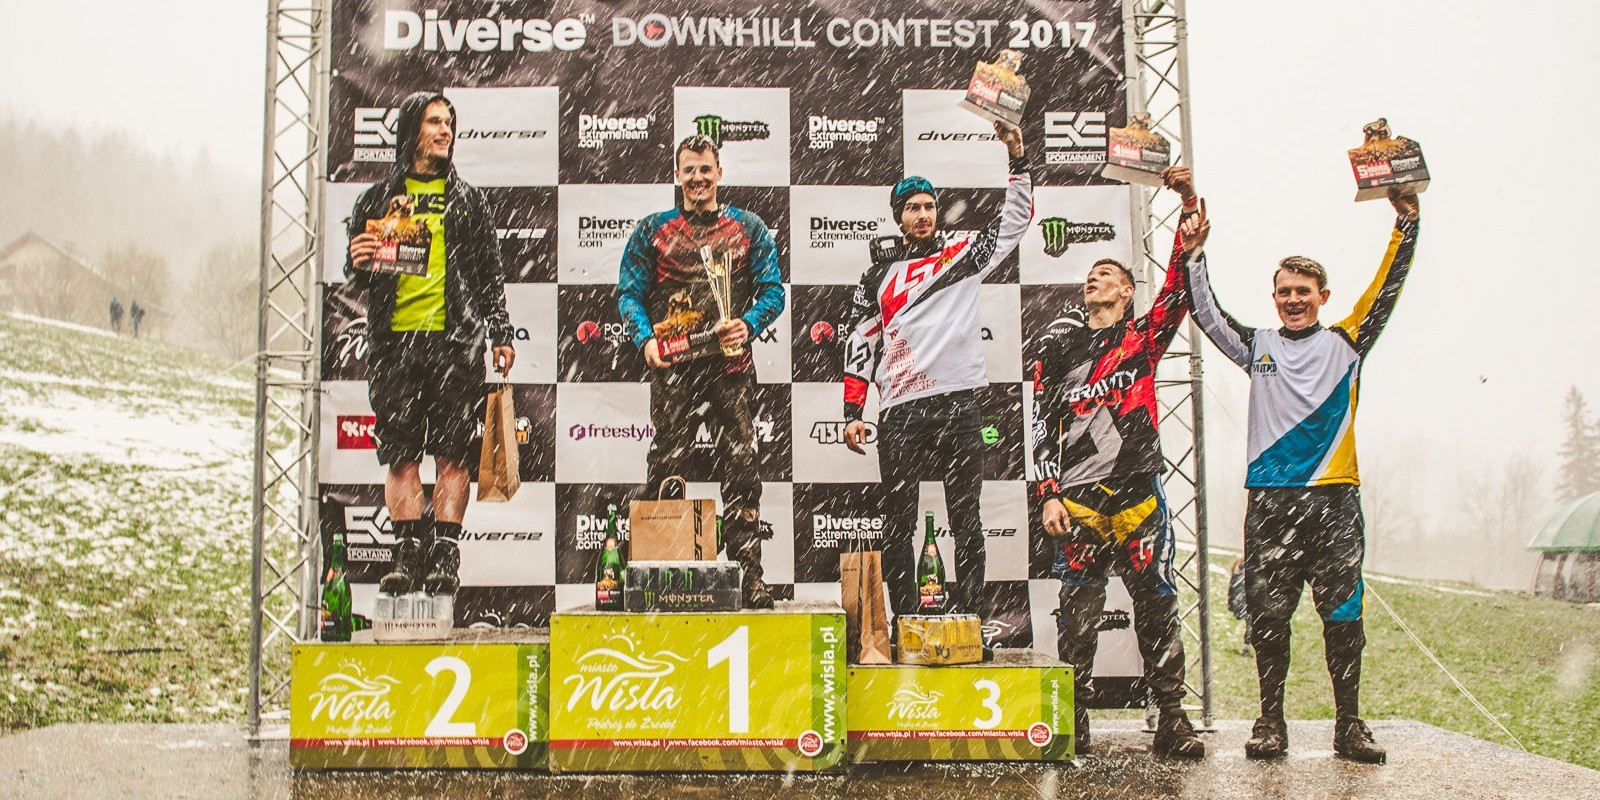 Diverse Downhill Contest 2017 Round 1 held in Wisła, Poland - podium of the Elite Men category